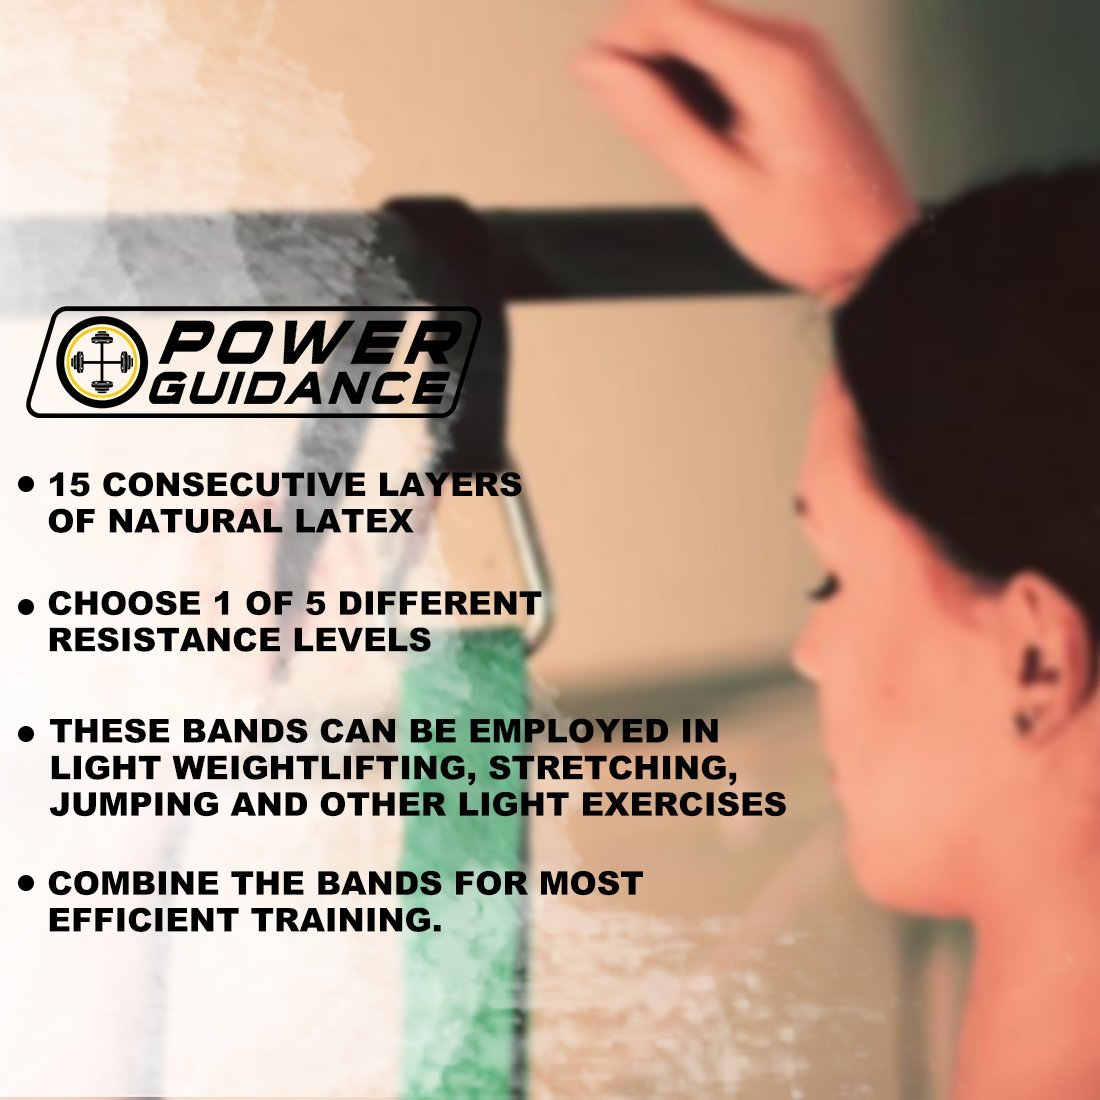 POWER GUIDANCE Pull Up Assist Bands - Stretch Resistance Band - Mobility Band - Powerlifting Bands - by Perfect for Body Stretching, Powerlifting, Resistance Training - Single Unit- Green by POWER GUIDANCE (Image #7)